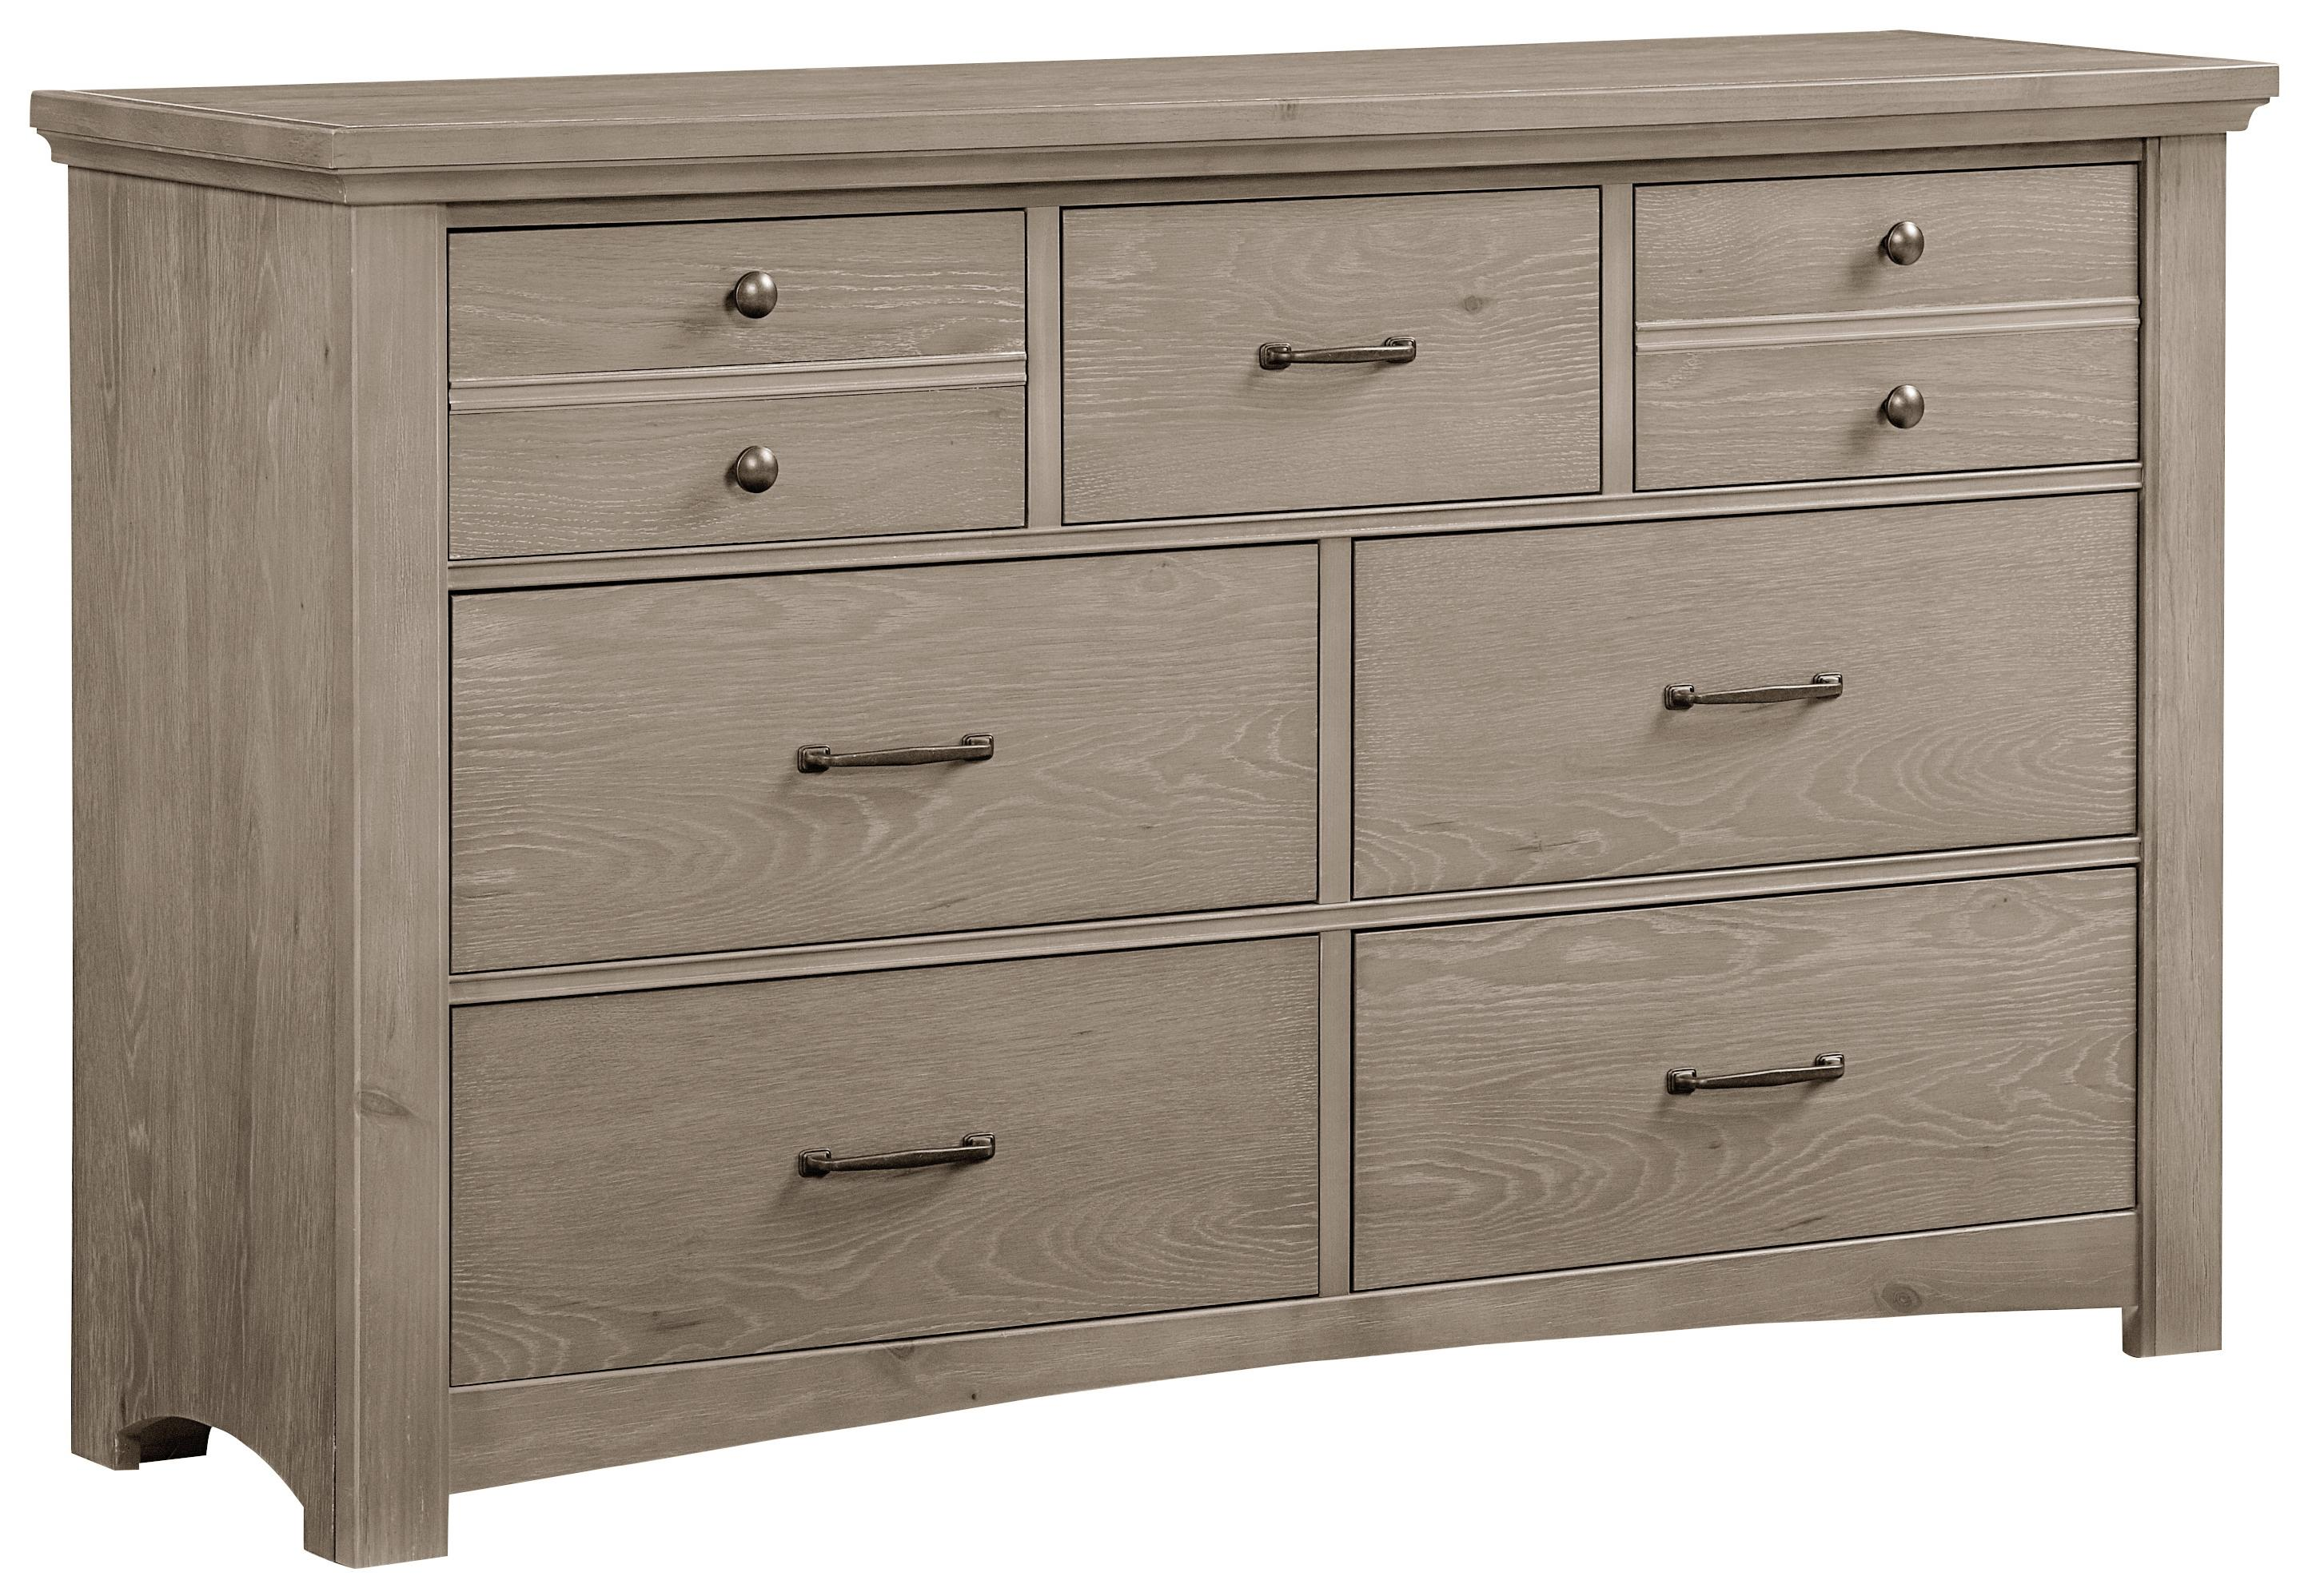 Vaughan Bassett Transitions Dresser - 7 drawers - Item Number: BB61-002